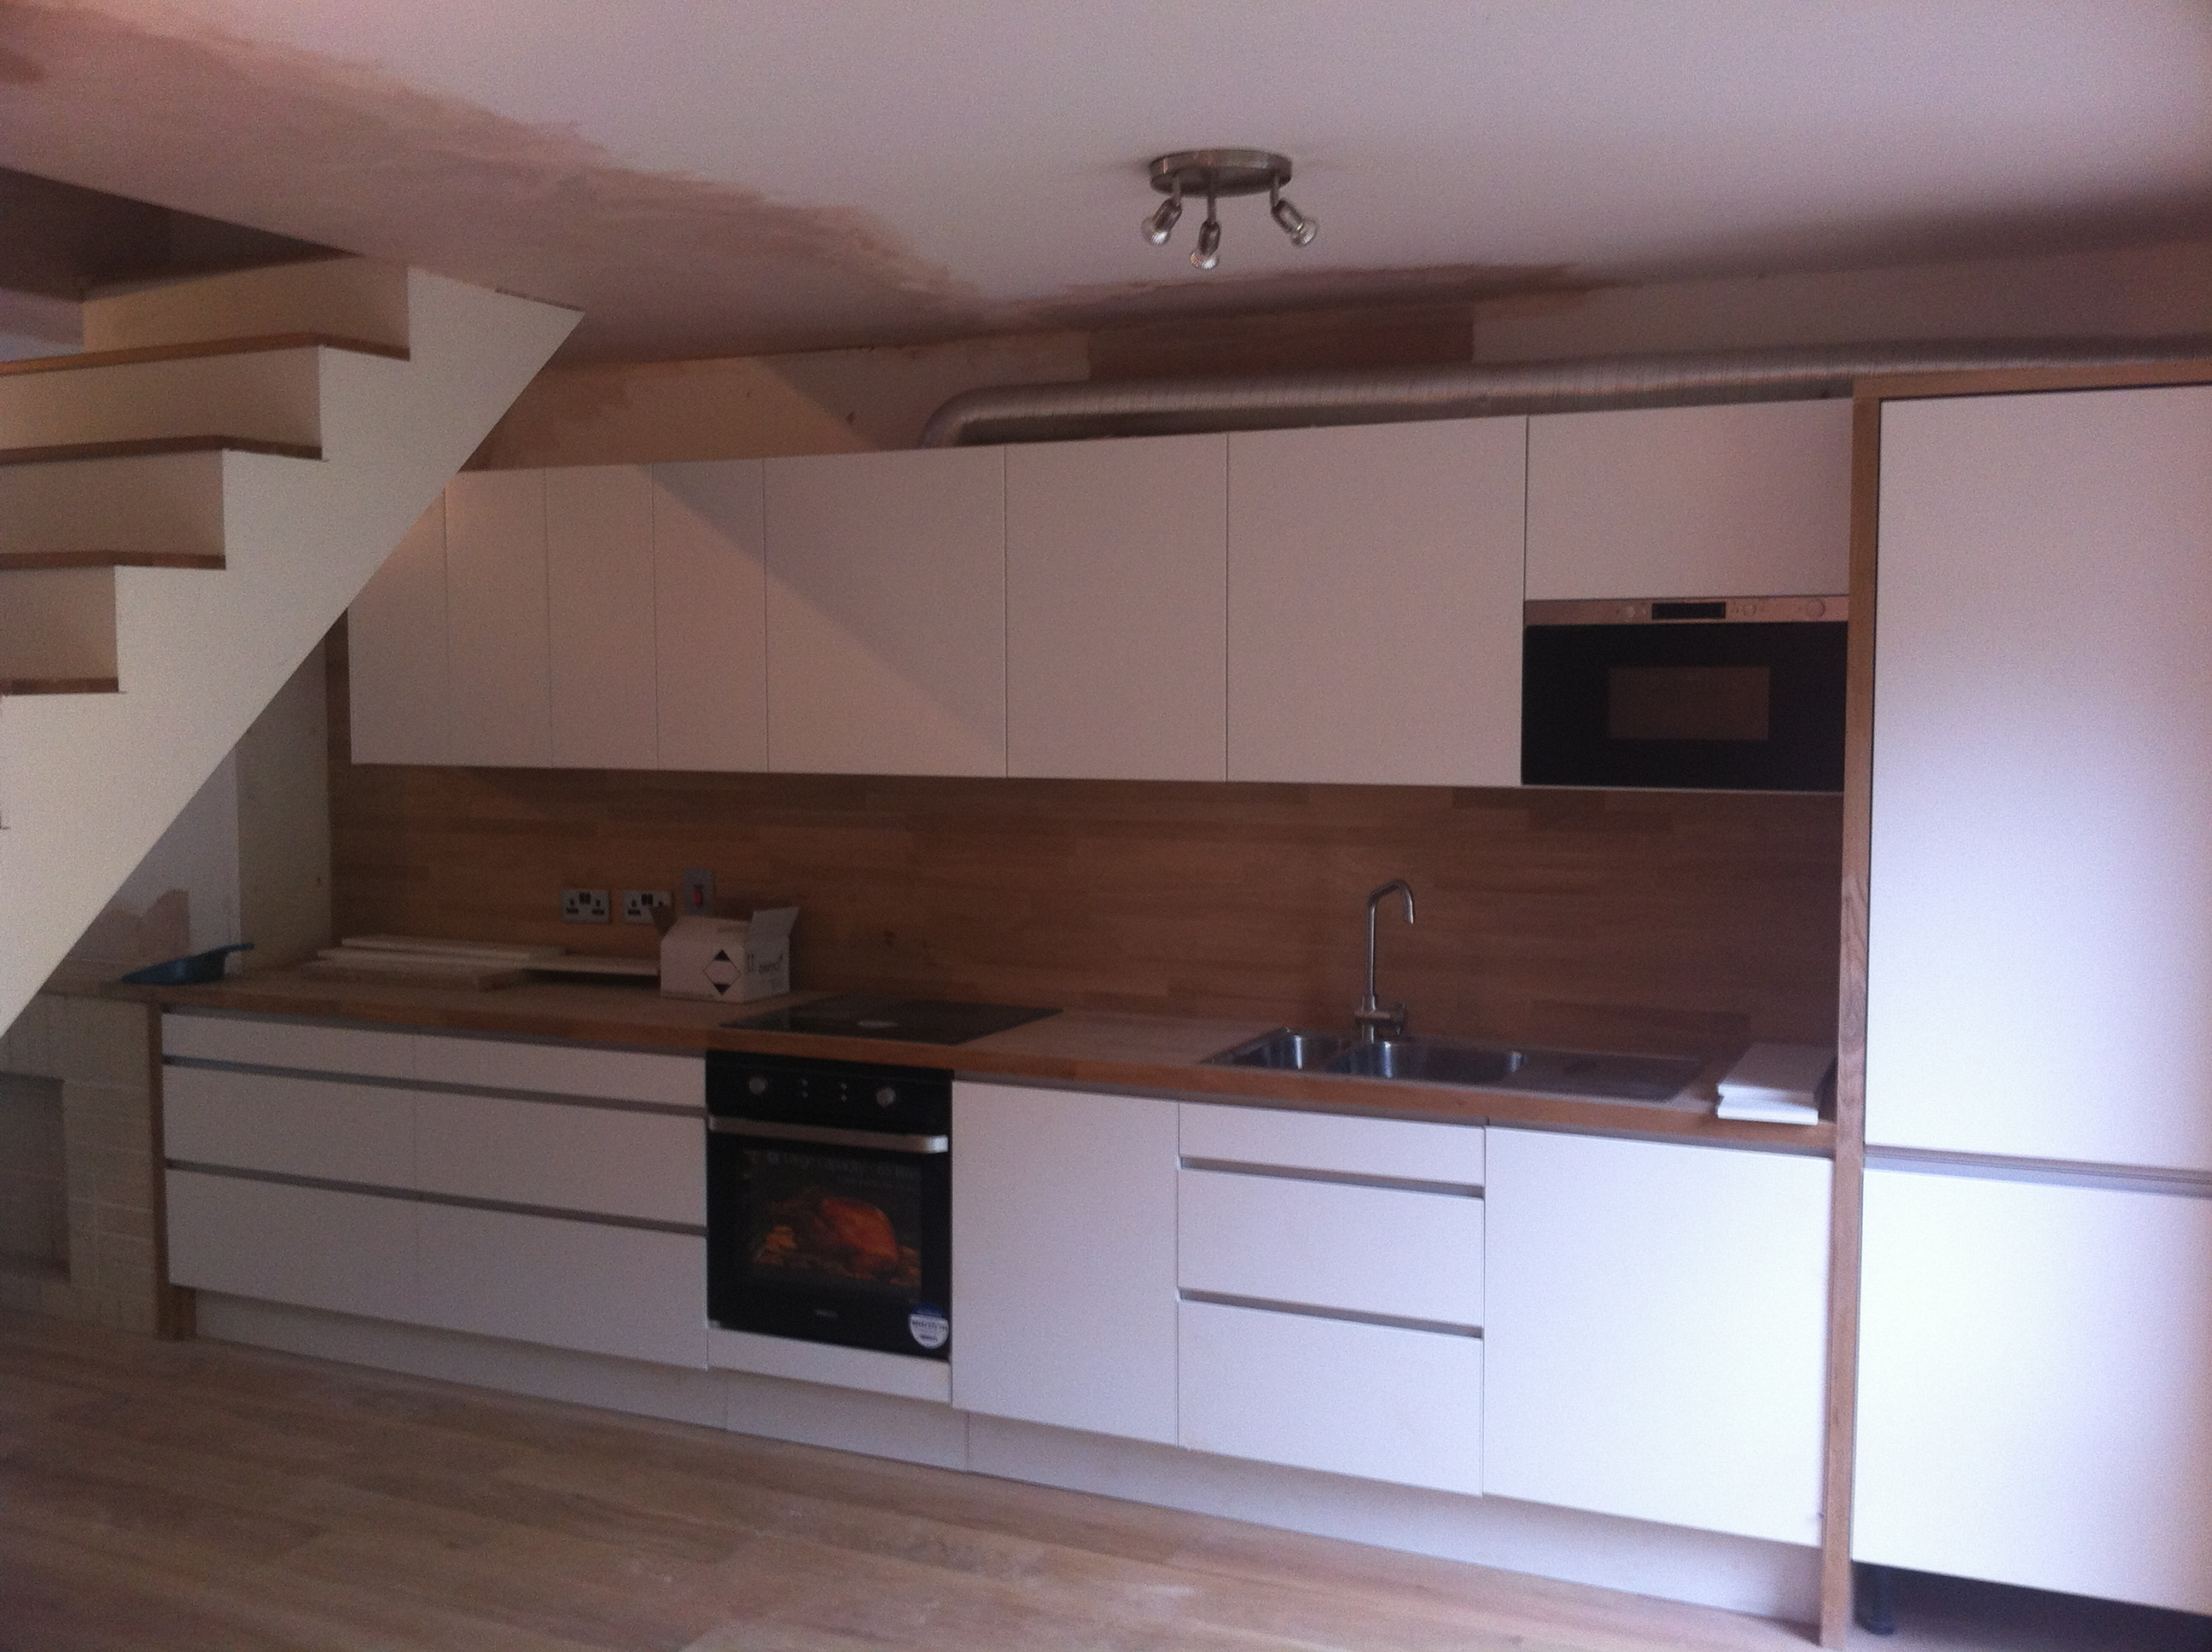 Kitchens Building Contractors Dublin Kildare And Leinster